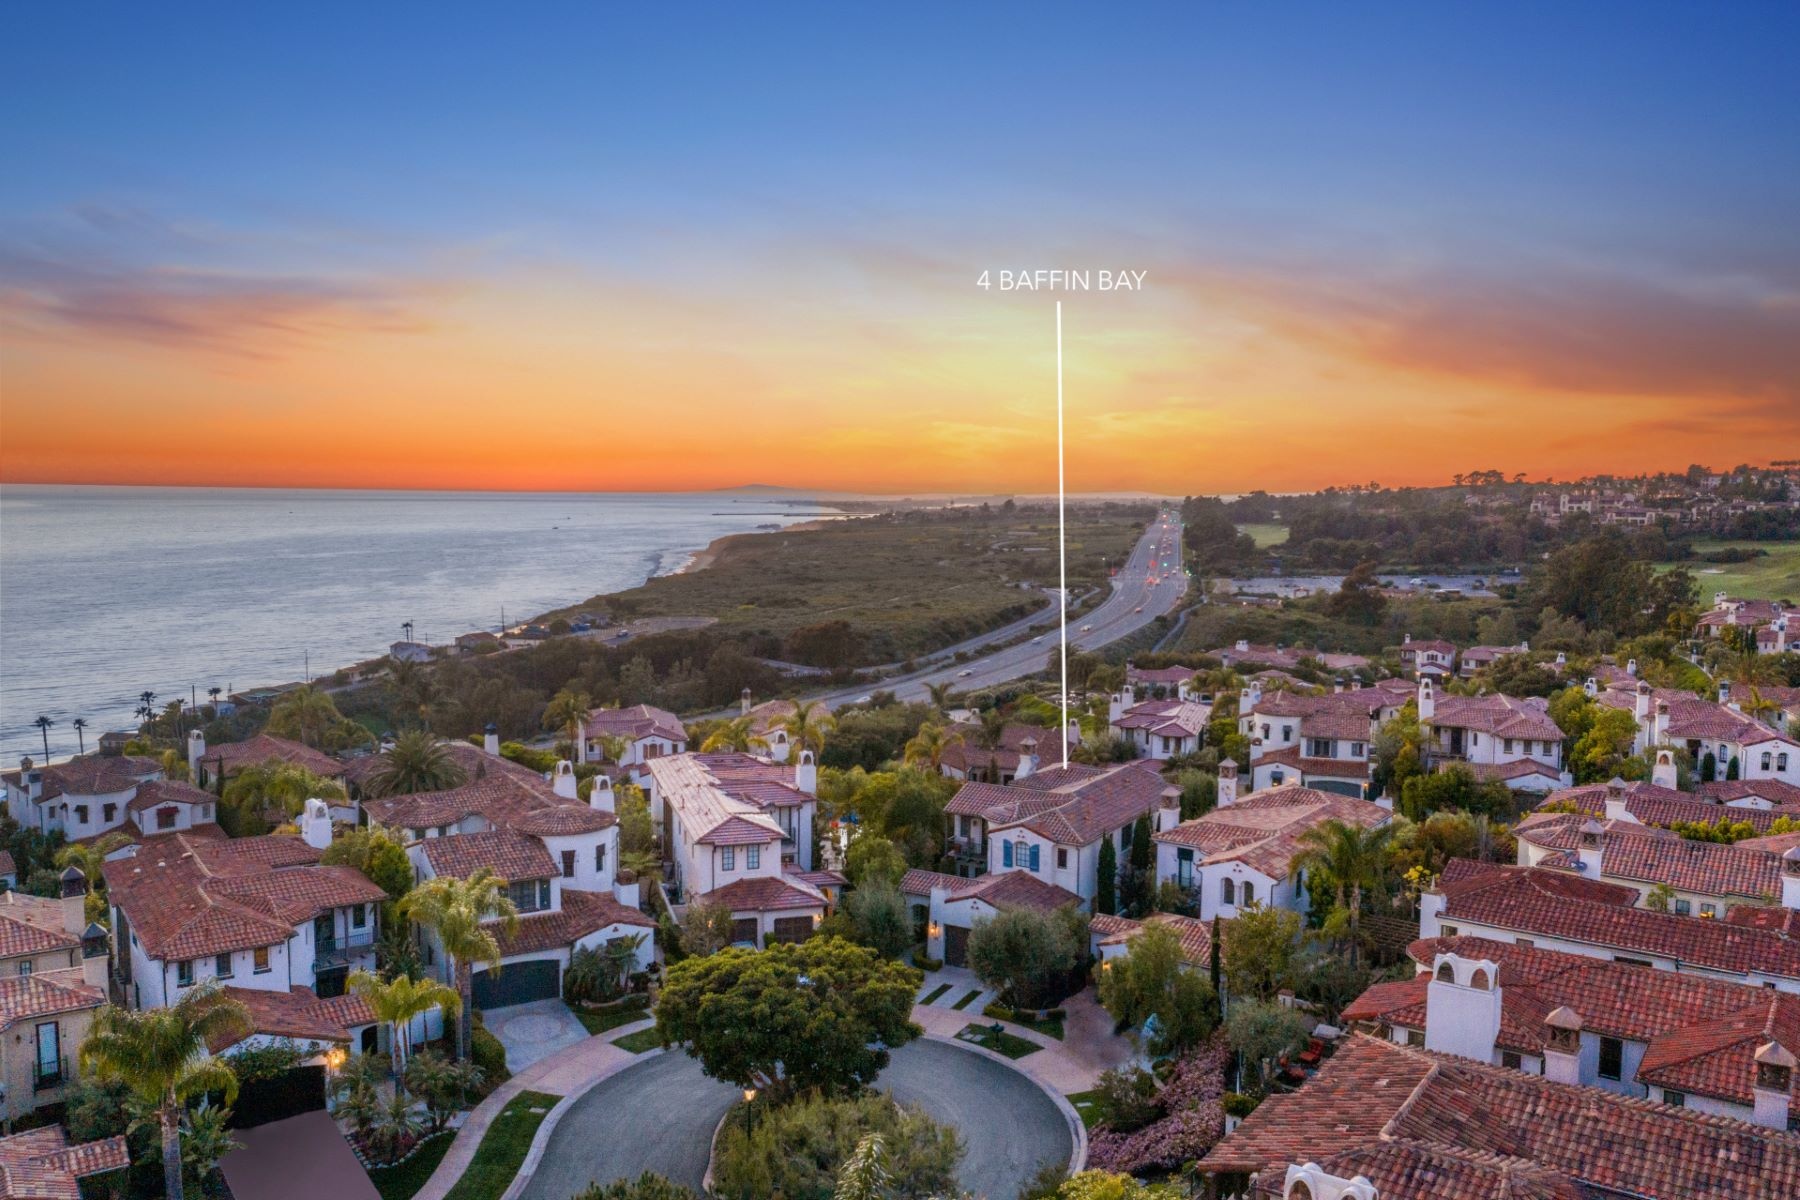 Single Family Homes for Active at 4 Baffin Bay, Newport Coast, CA 92657 4 Baffin Bay Newport Coast, California 92657 United States